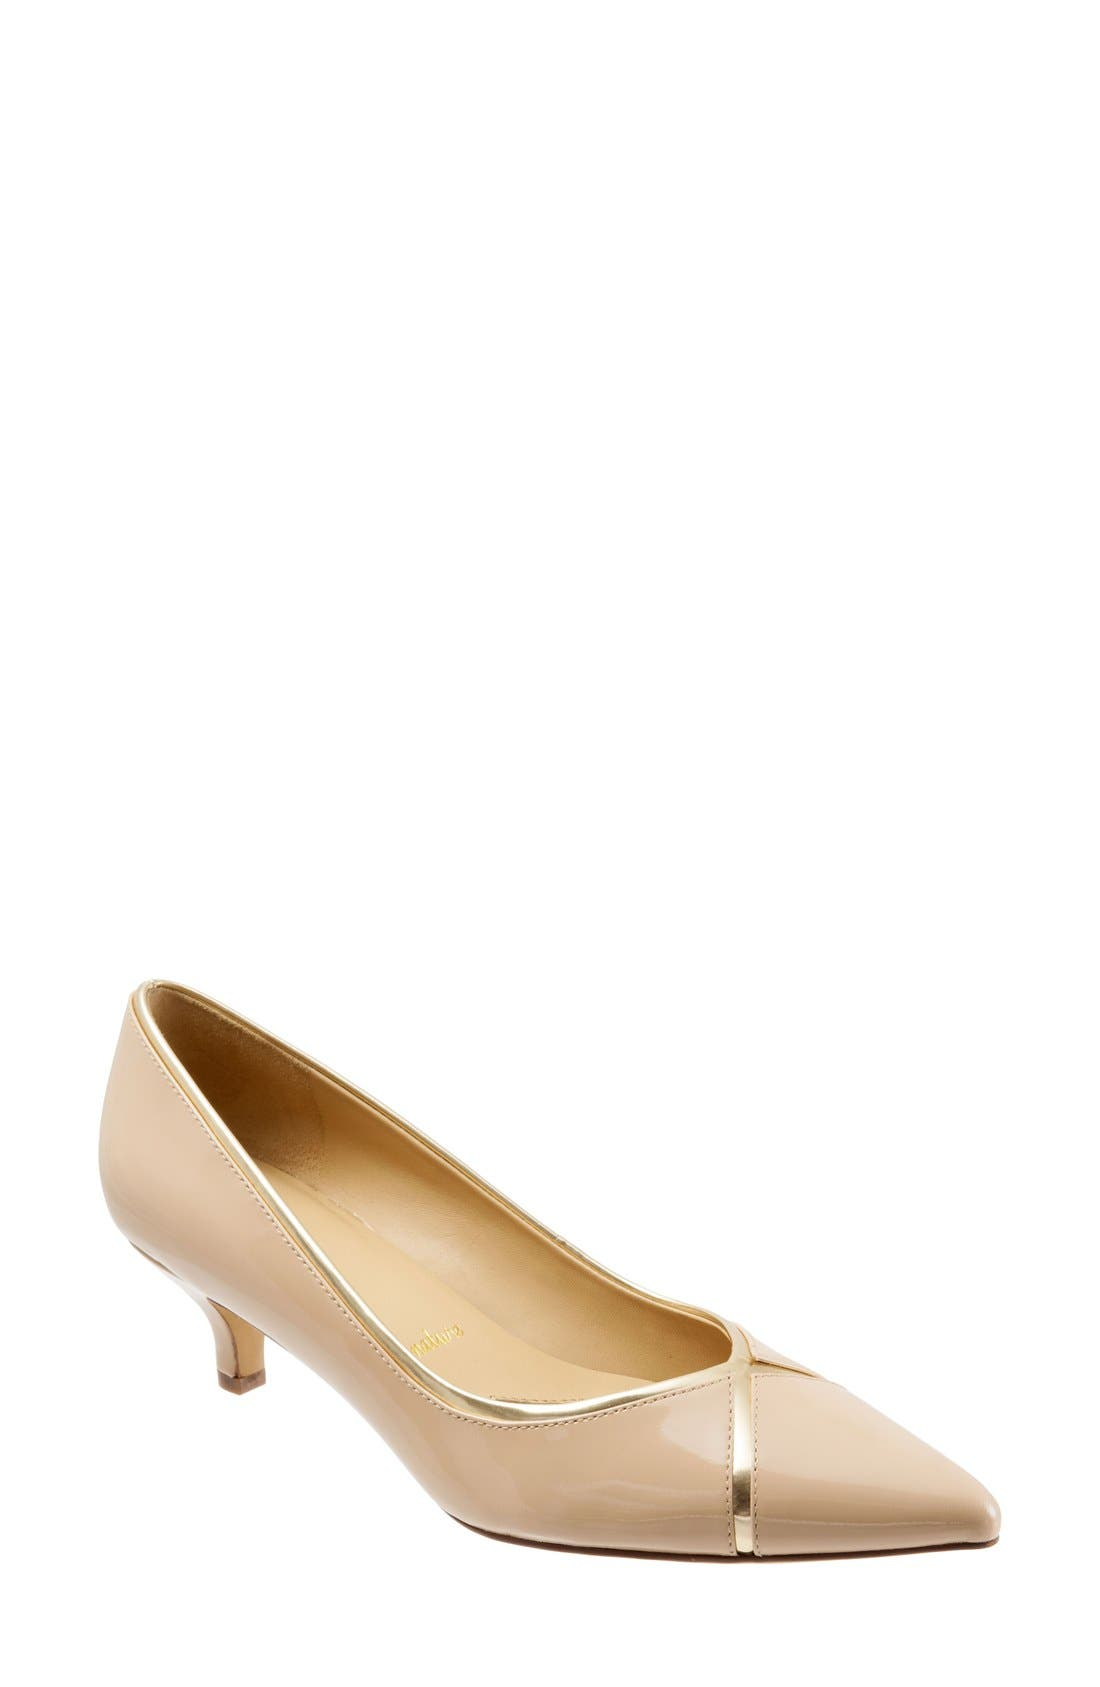 'Kelsey' Pointy Toe Pump,                         Main,                         color, Nude